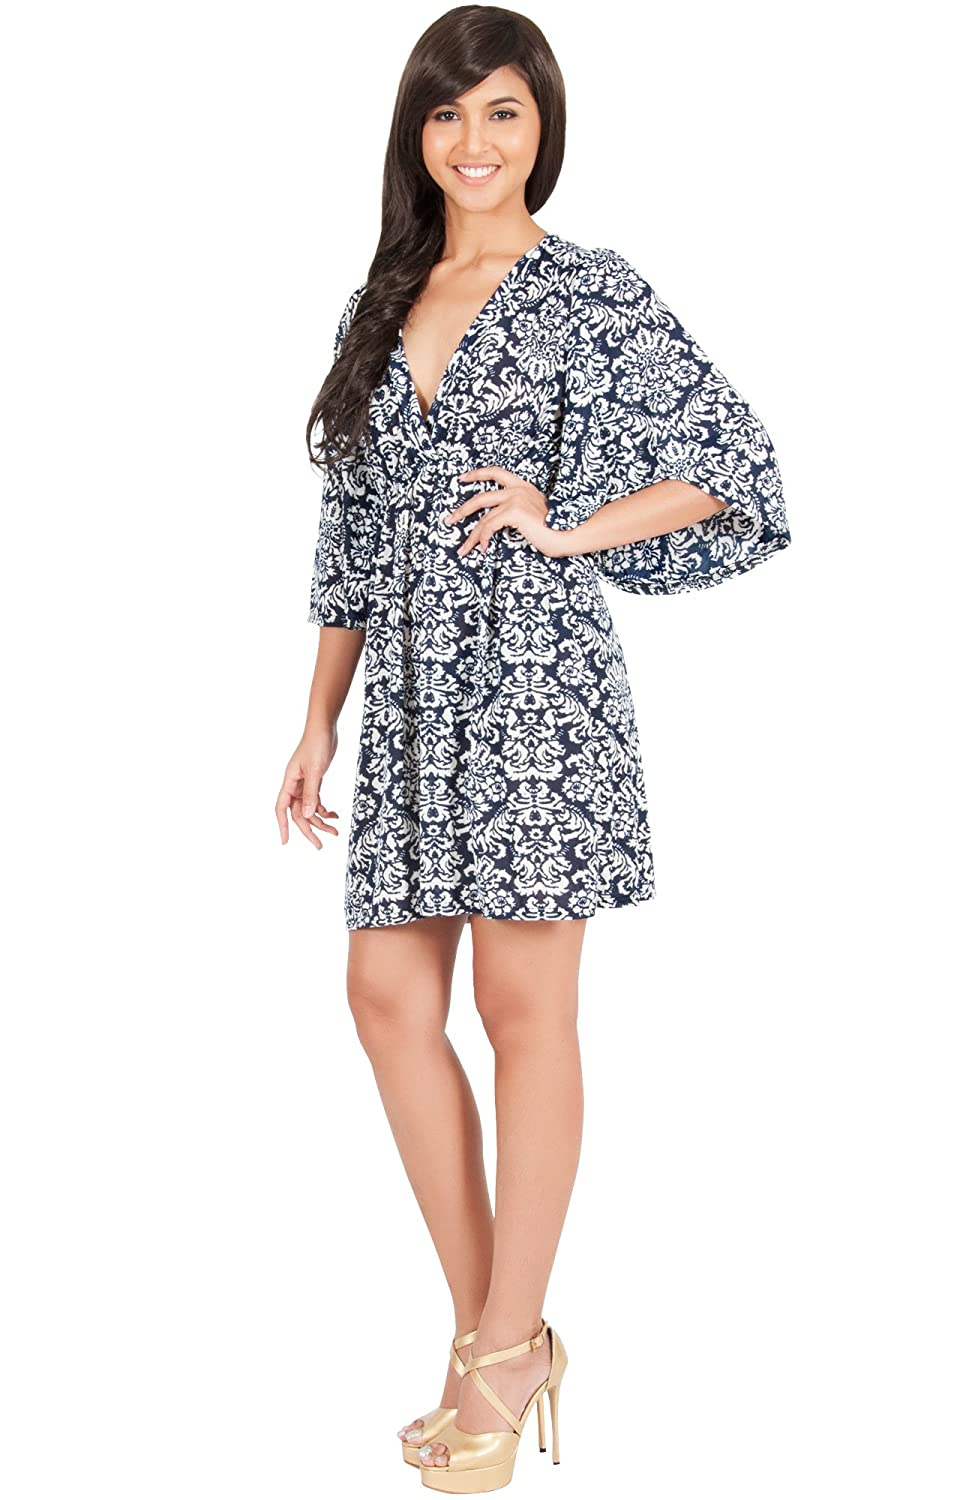 KOH KOH Womens Long Kimono Sleeve Printed V-Neck Floral Casual Short Mini  Dress at Amazon Women s Clothing store  cf169f8cc